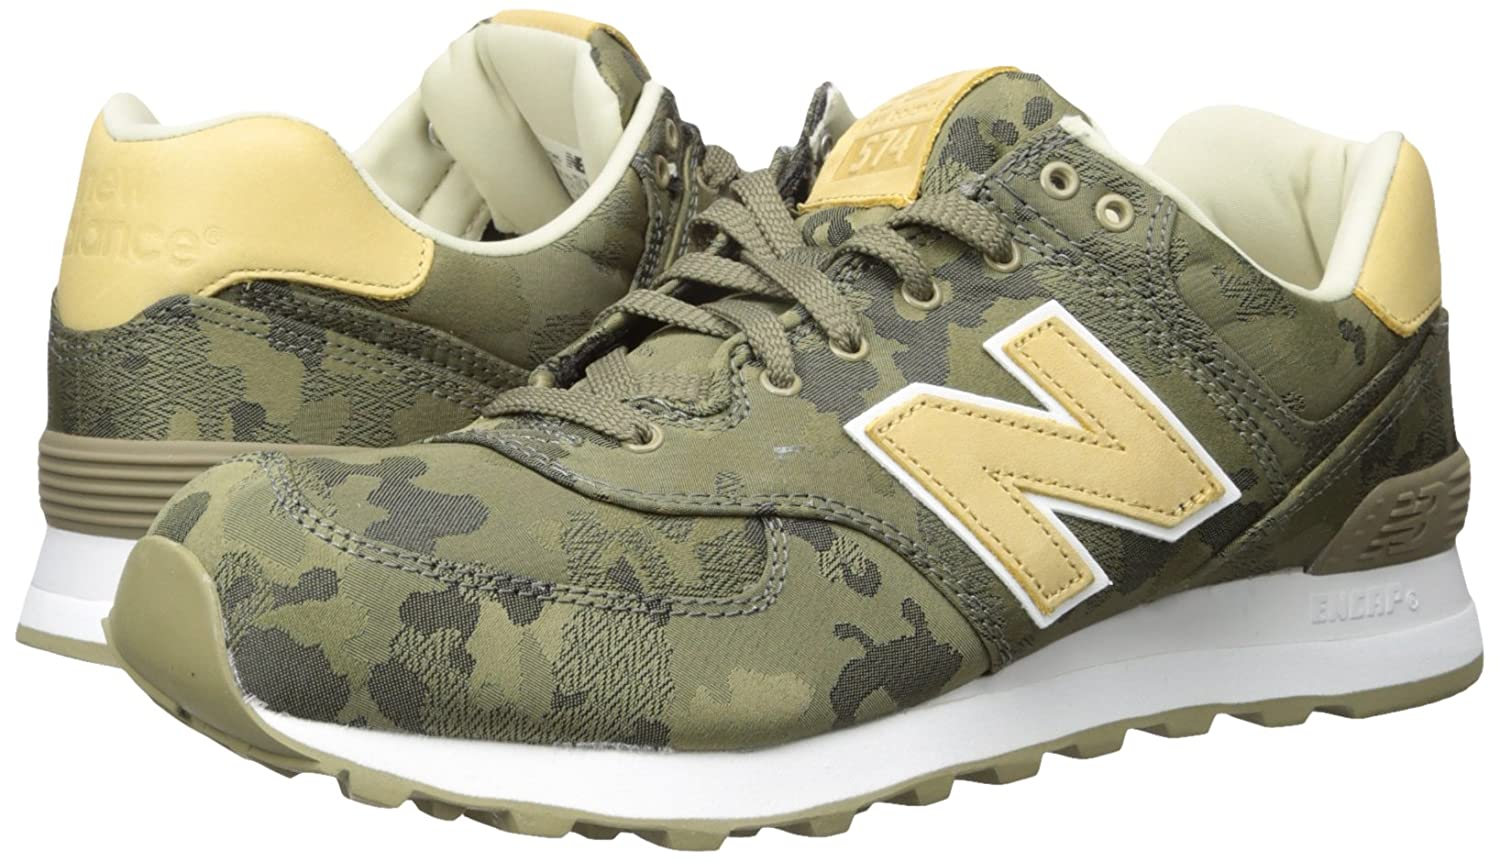 quality design 170ef 88c34 New Balance Men's 574 Cameo Pack Lifestyle Fashion Sneaker